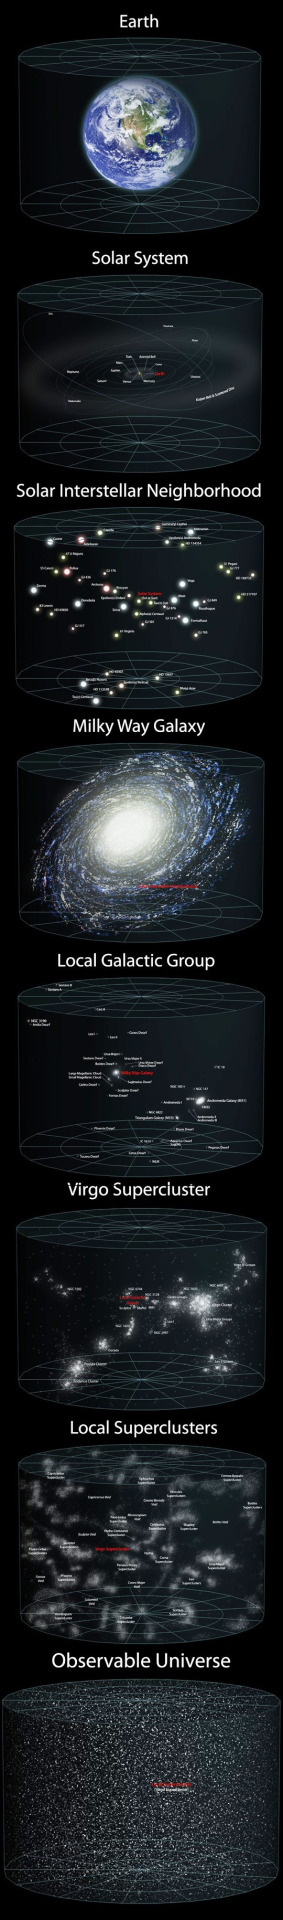 Our Universe Around Us